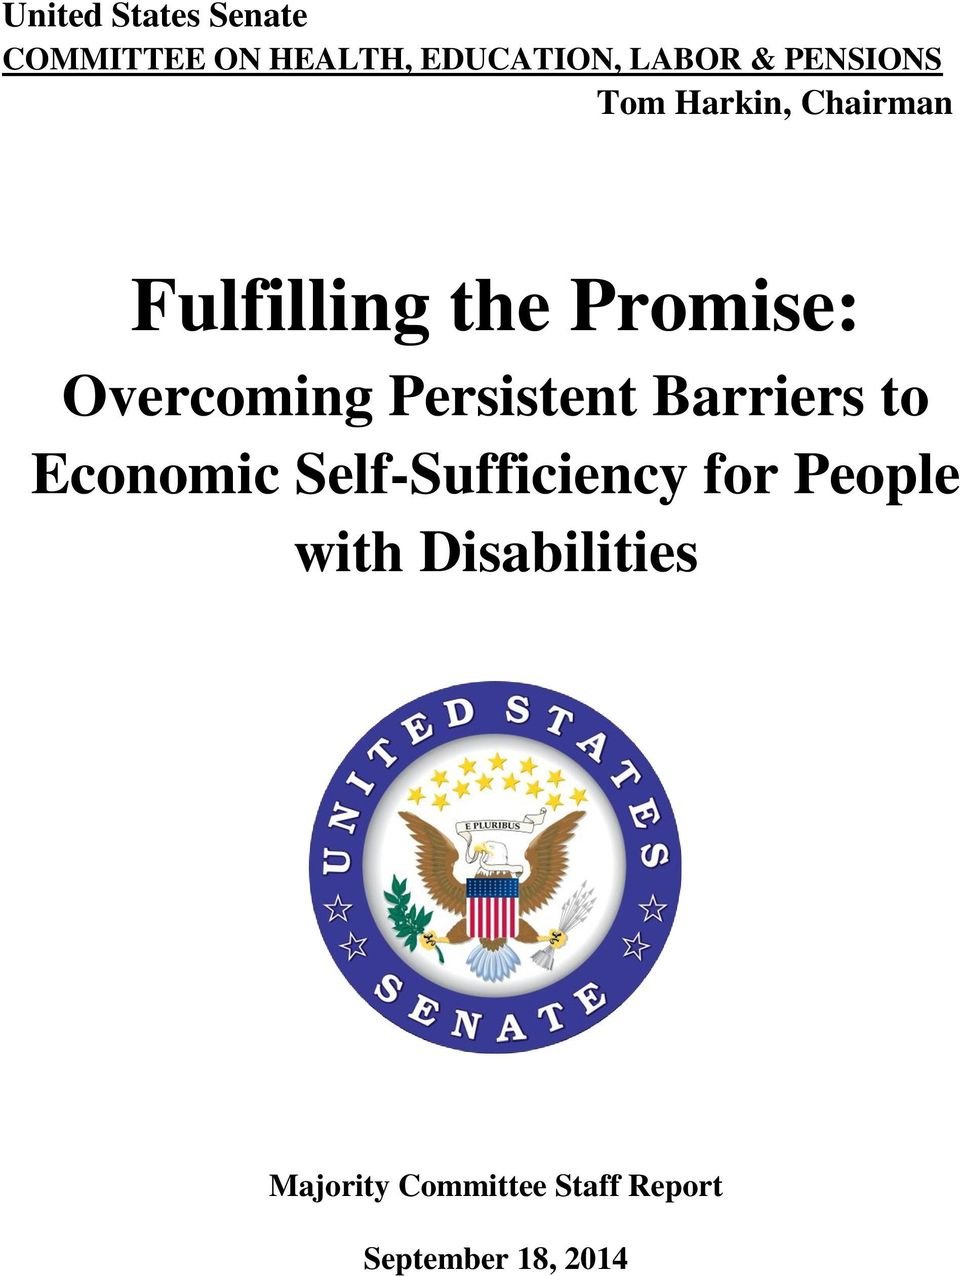 Overcoming Persistent Barriers to Economic Self-Sufficiency for